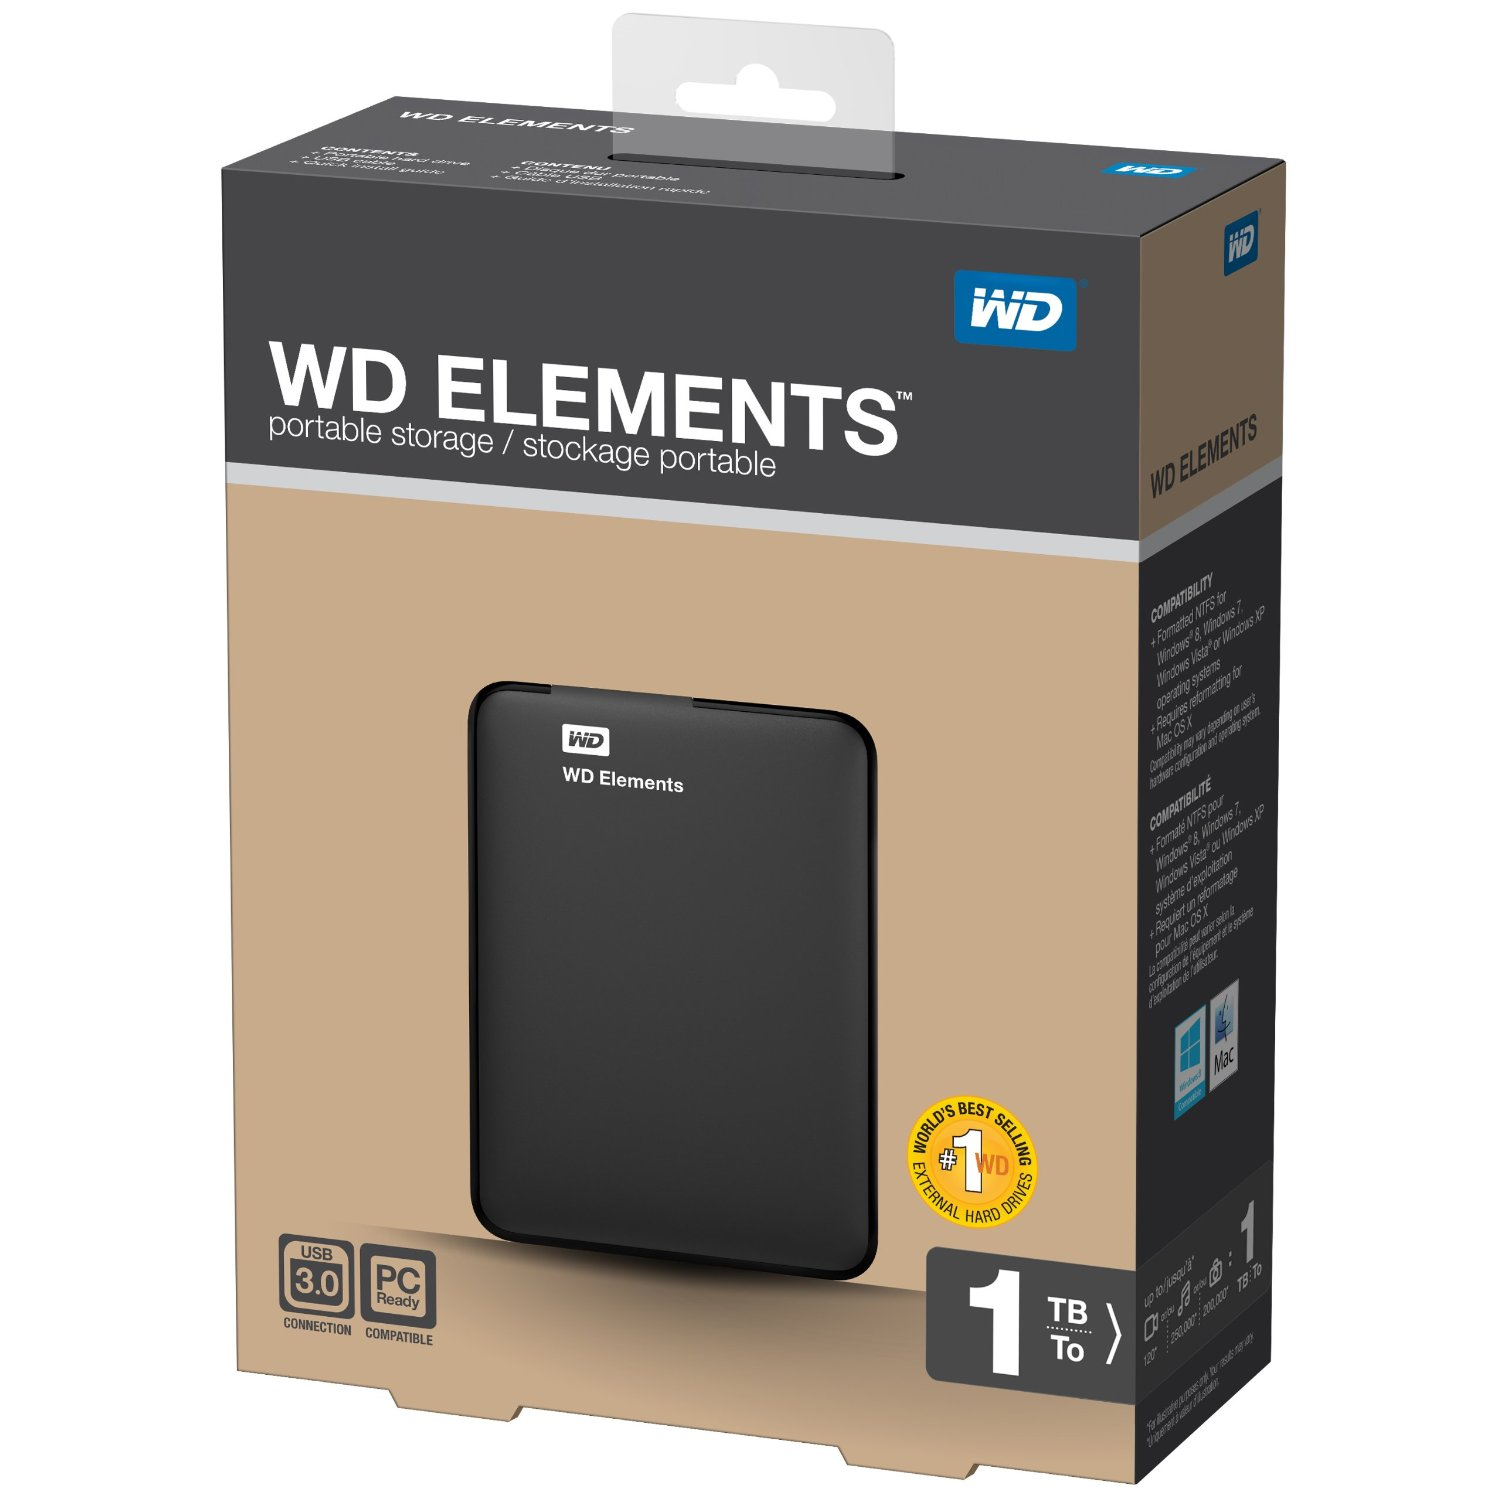 wd elements 1tb portable usb 3 0 hard drive storage for sale in jamaica. Black Bedroom Furniture Sets. Home Design Ideas